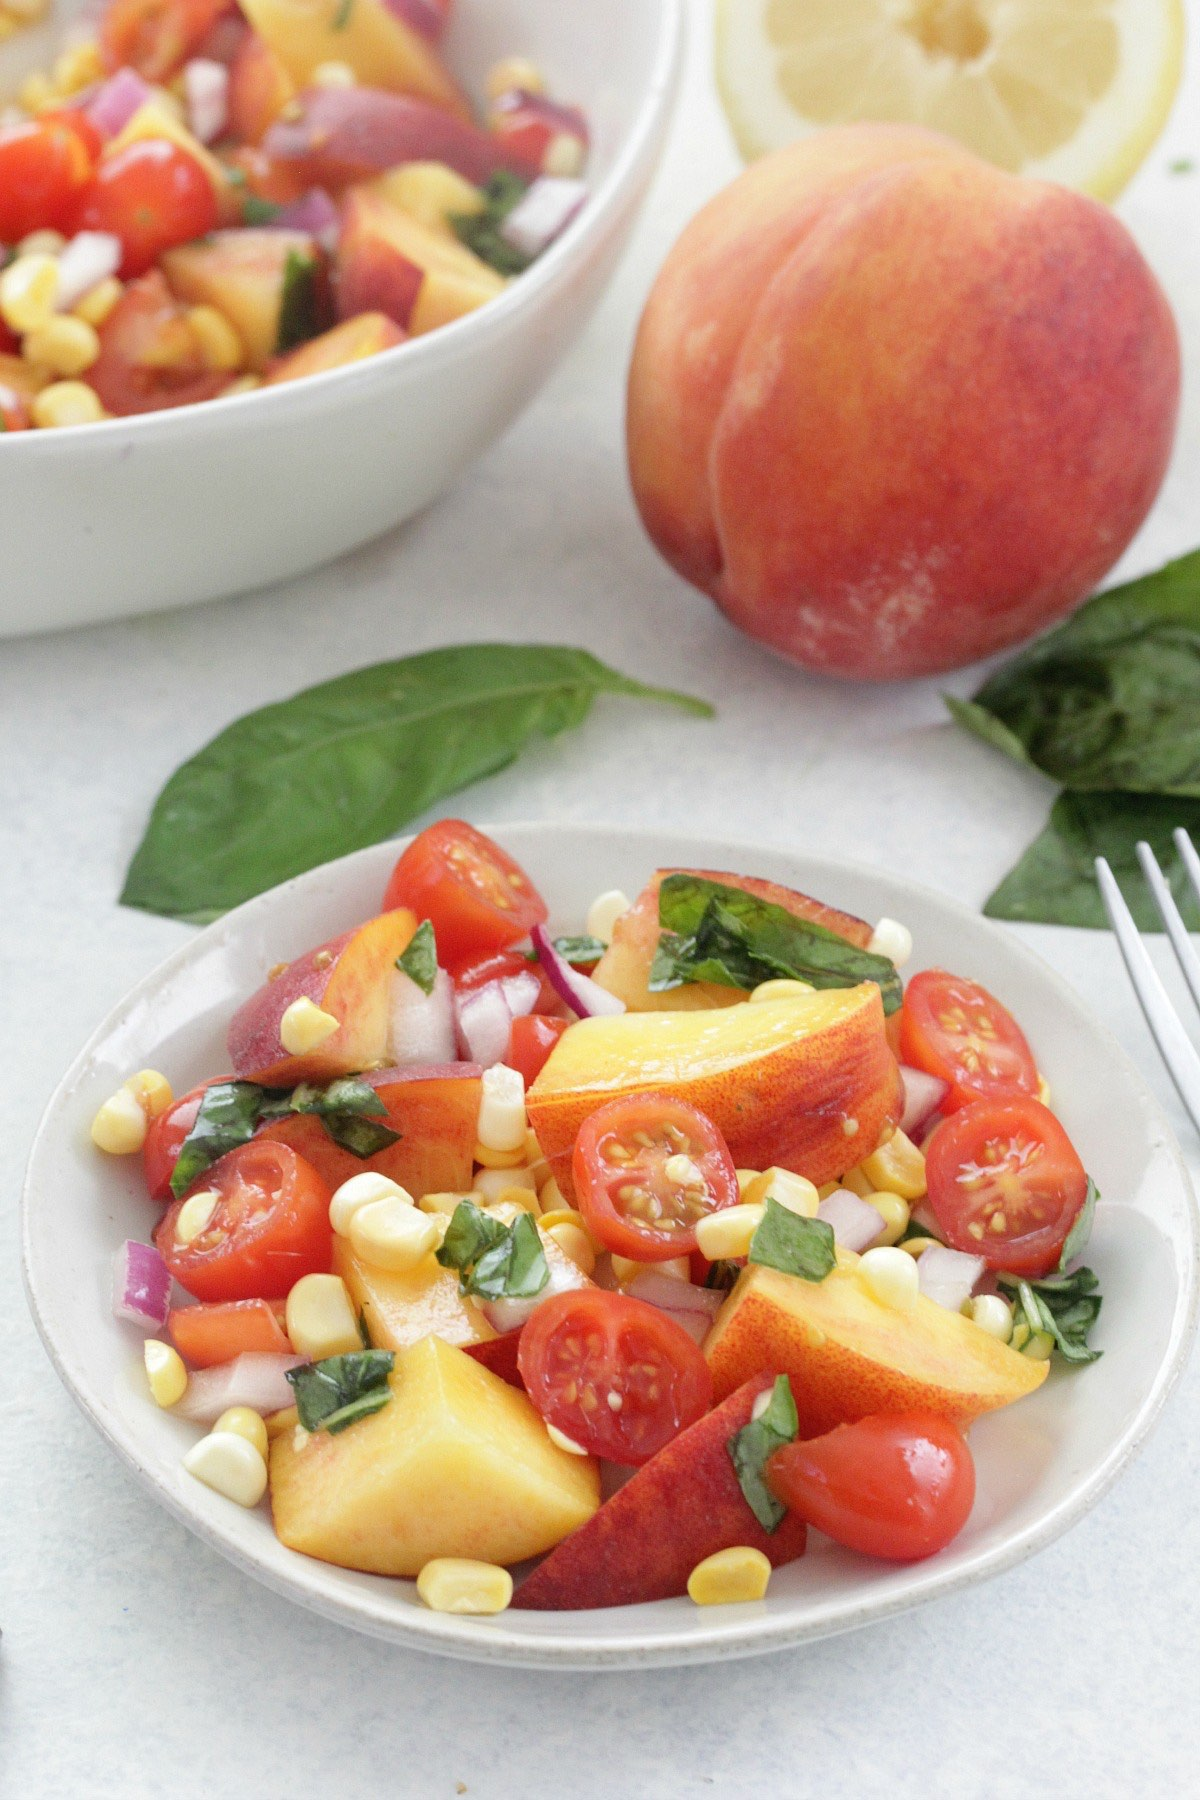 Peach and Tomato Salad on a white plate with fresh basil leaves and a peach